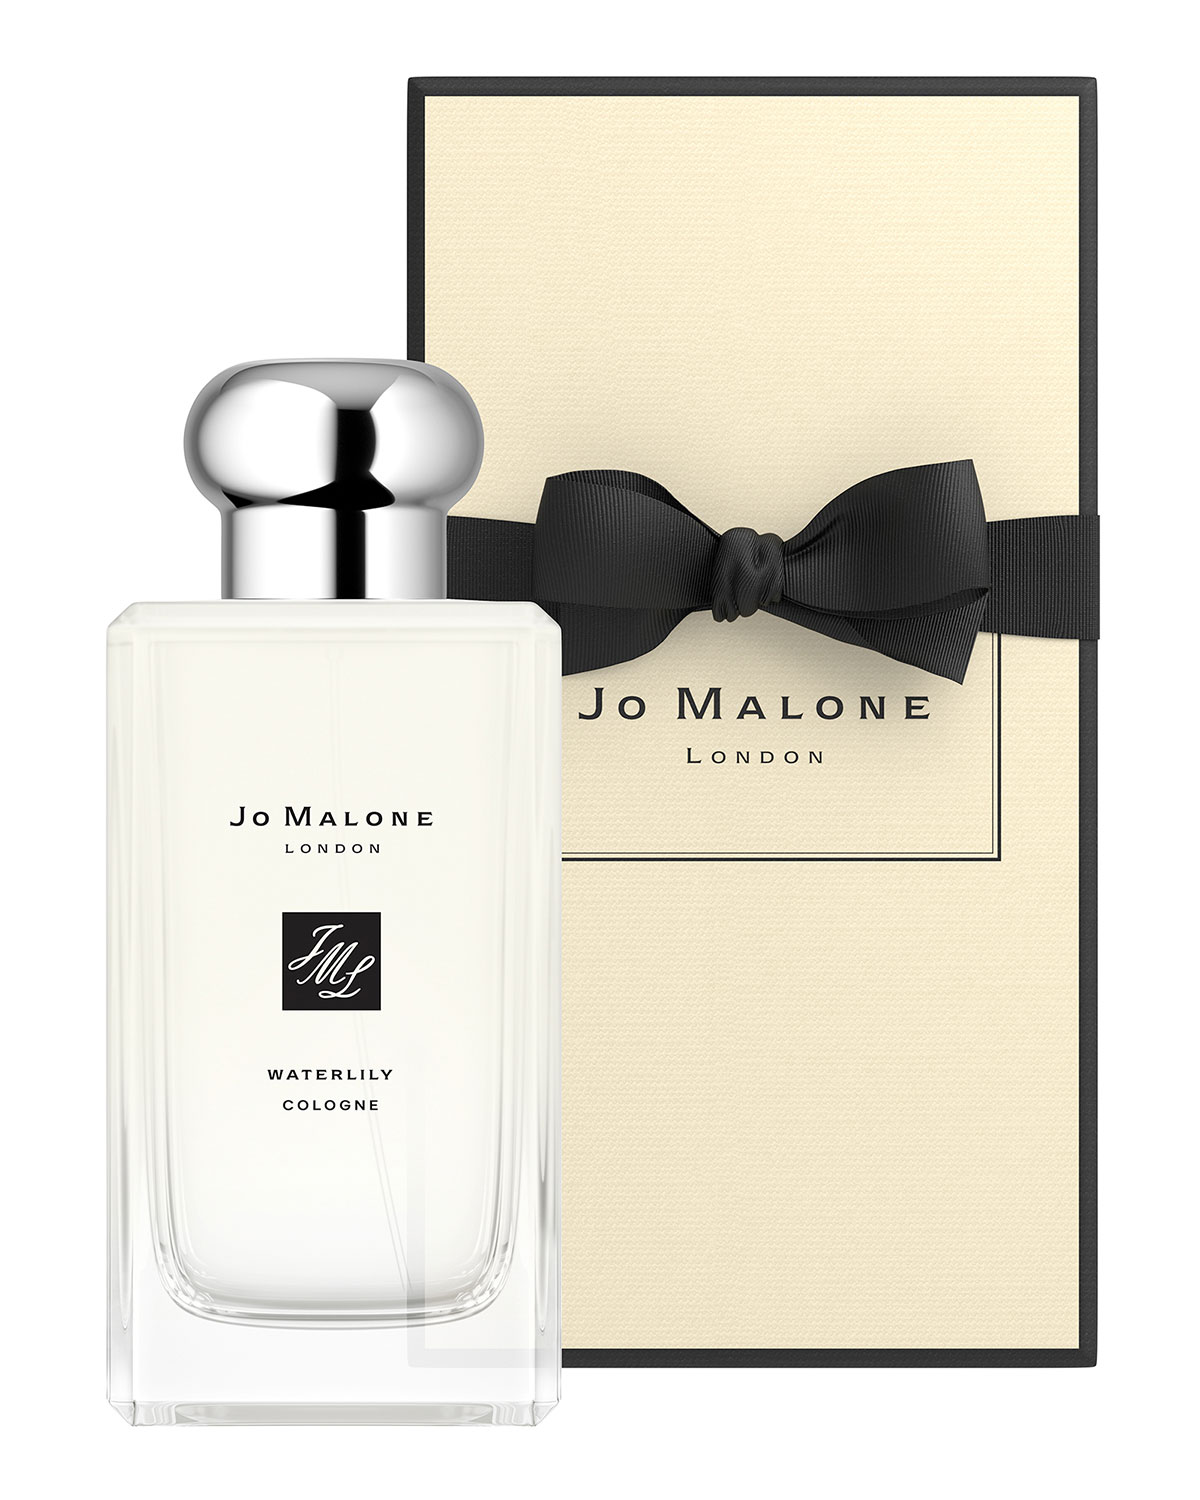 Jo Malone London 3.4 oz. Waterlily Cologne